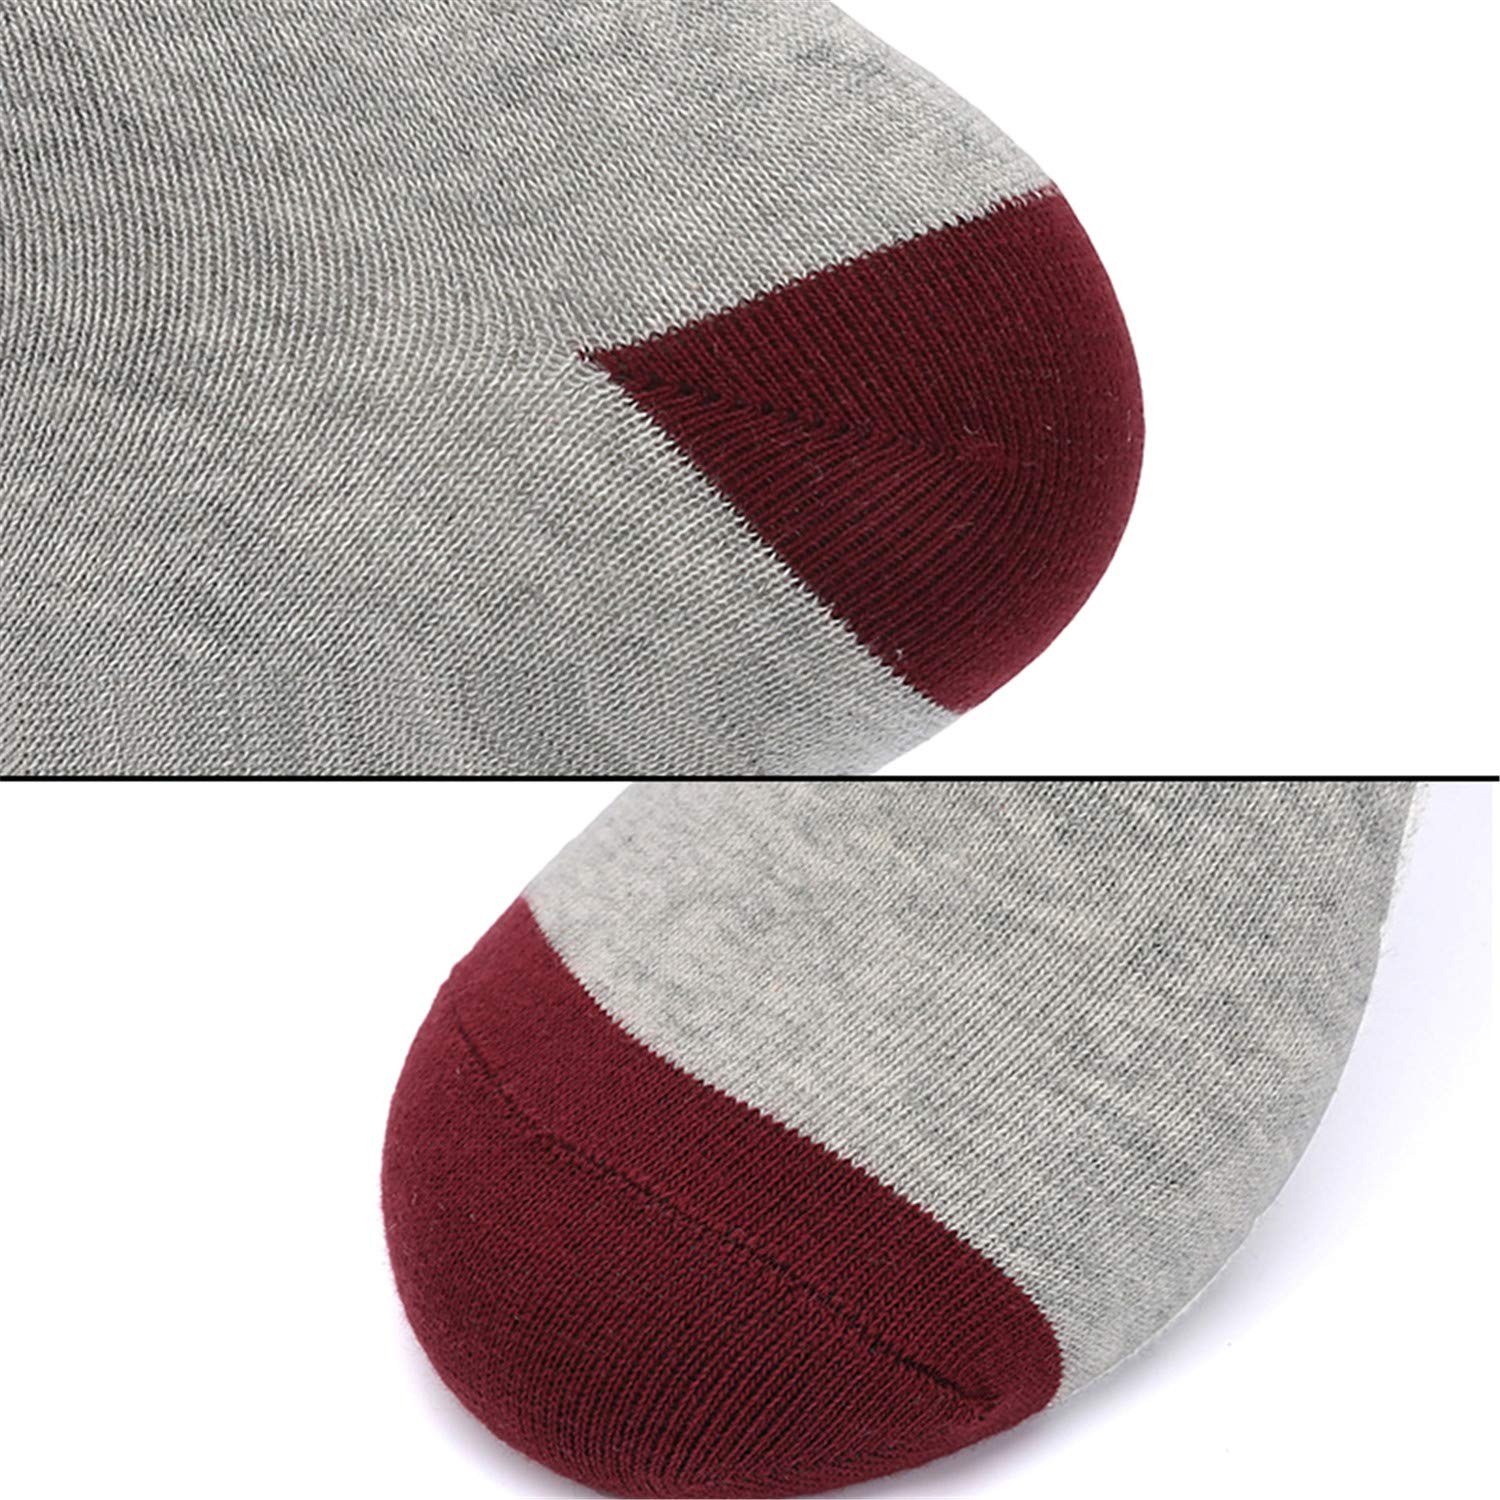 Amazon.com: Basic Cotton Men Socks EU39-45(US7-11) Hollow Breathable Winter Socks Sock For Men Calcetines Hombre 5Colors Packing: Clothing